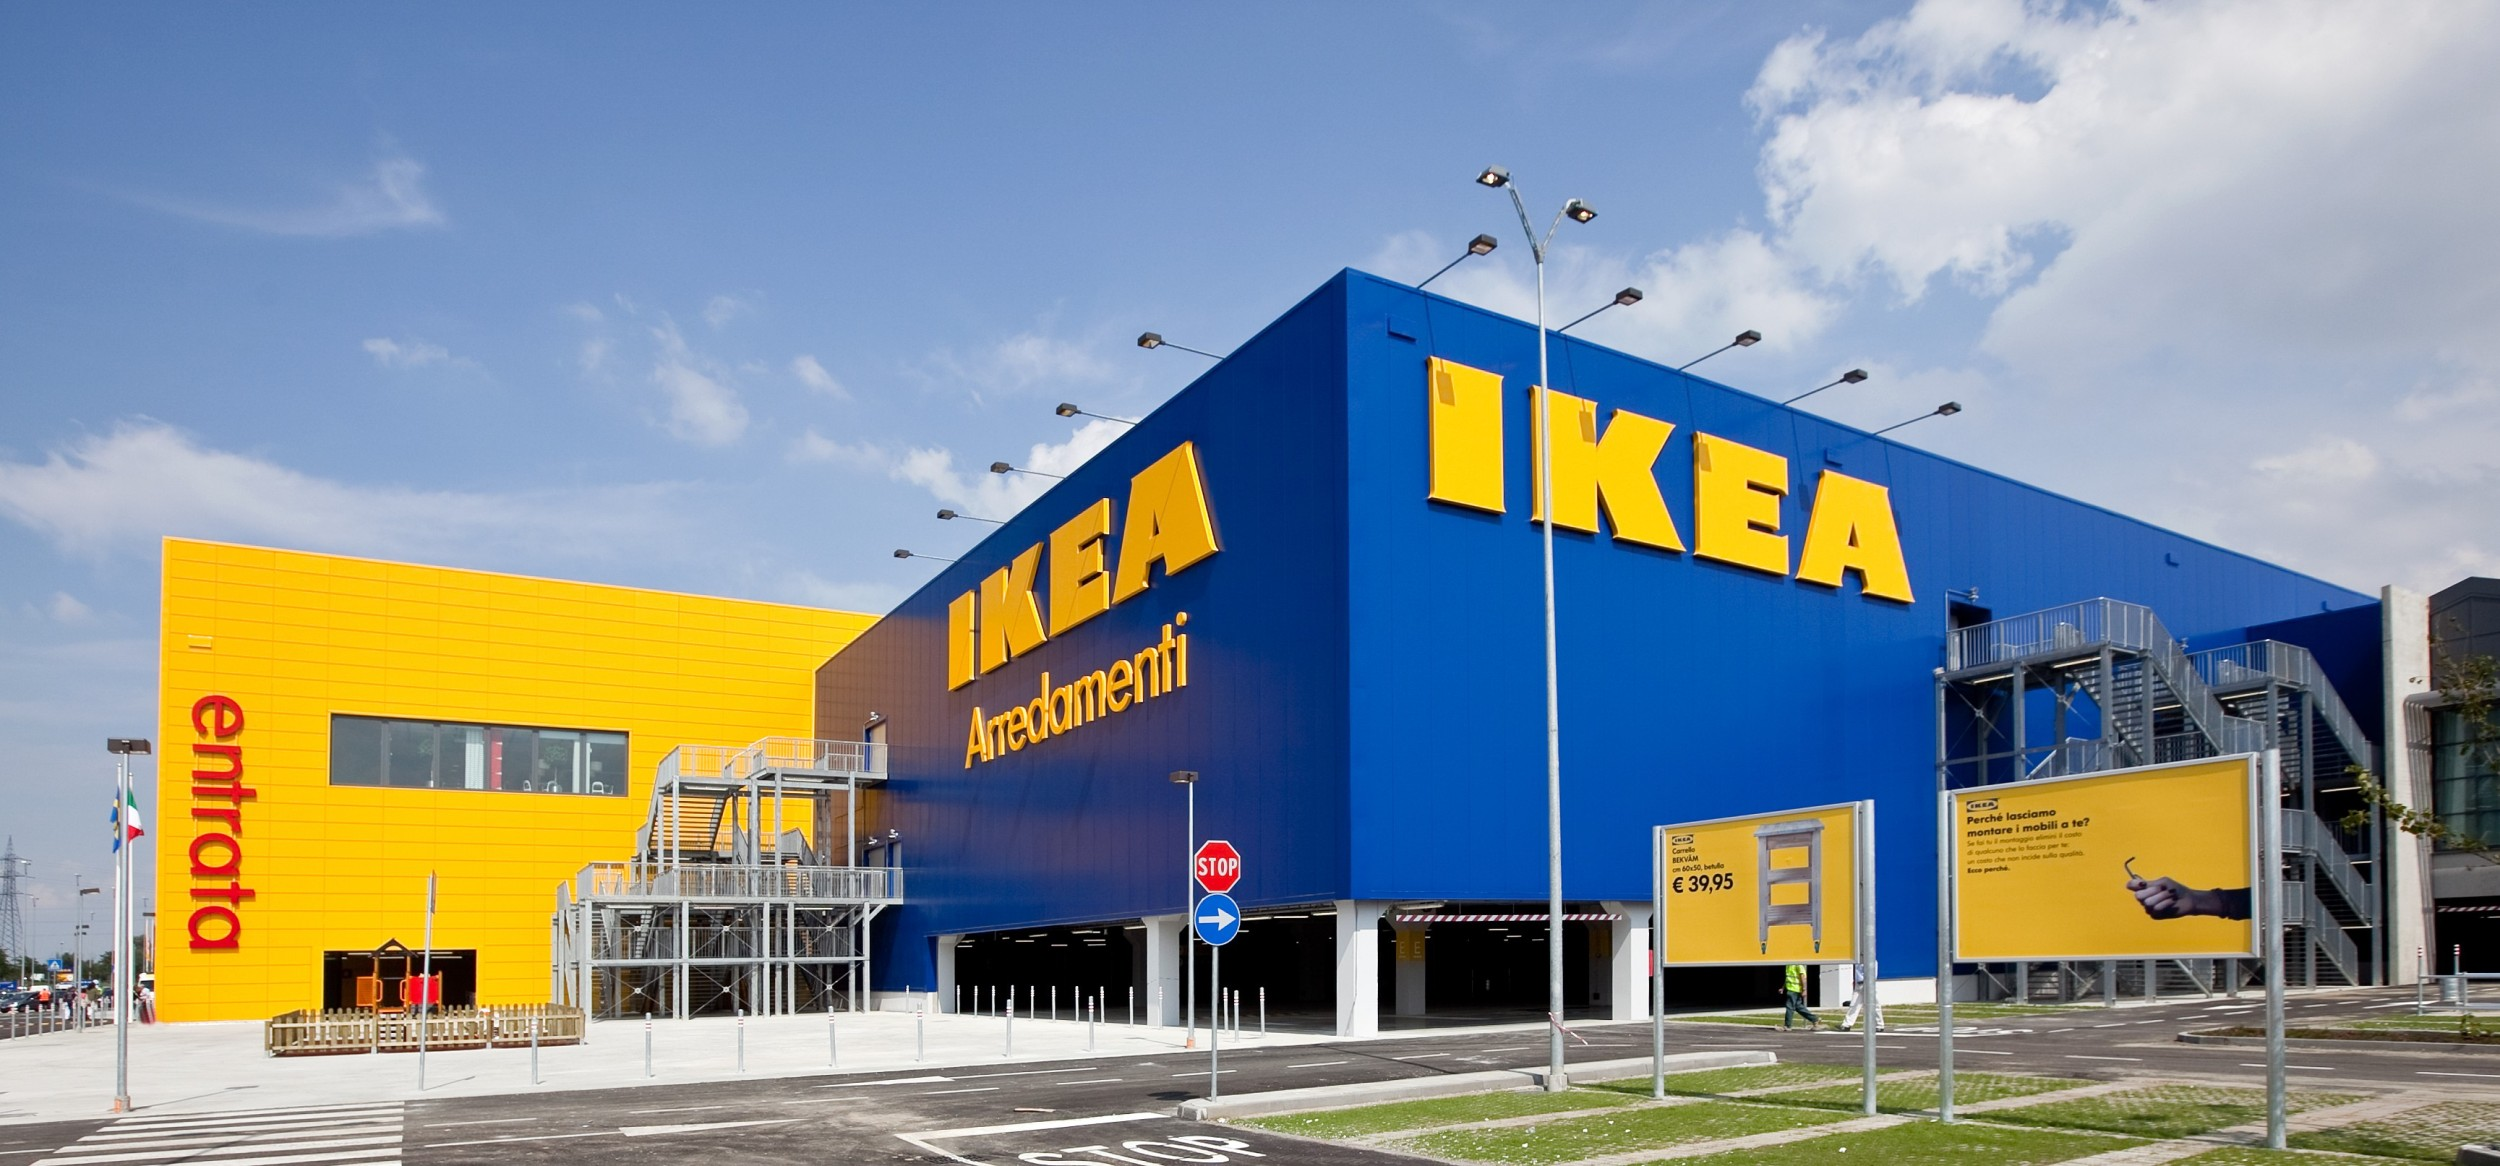 Ikea Home Tour Kicks Off Its Third Leg To Help Homeowners Tackle Real Life Home Design Challenges Houston Style Magazine Urban Weekly Newspaper